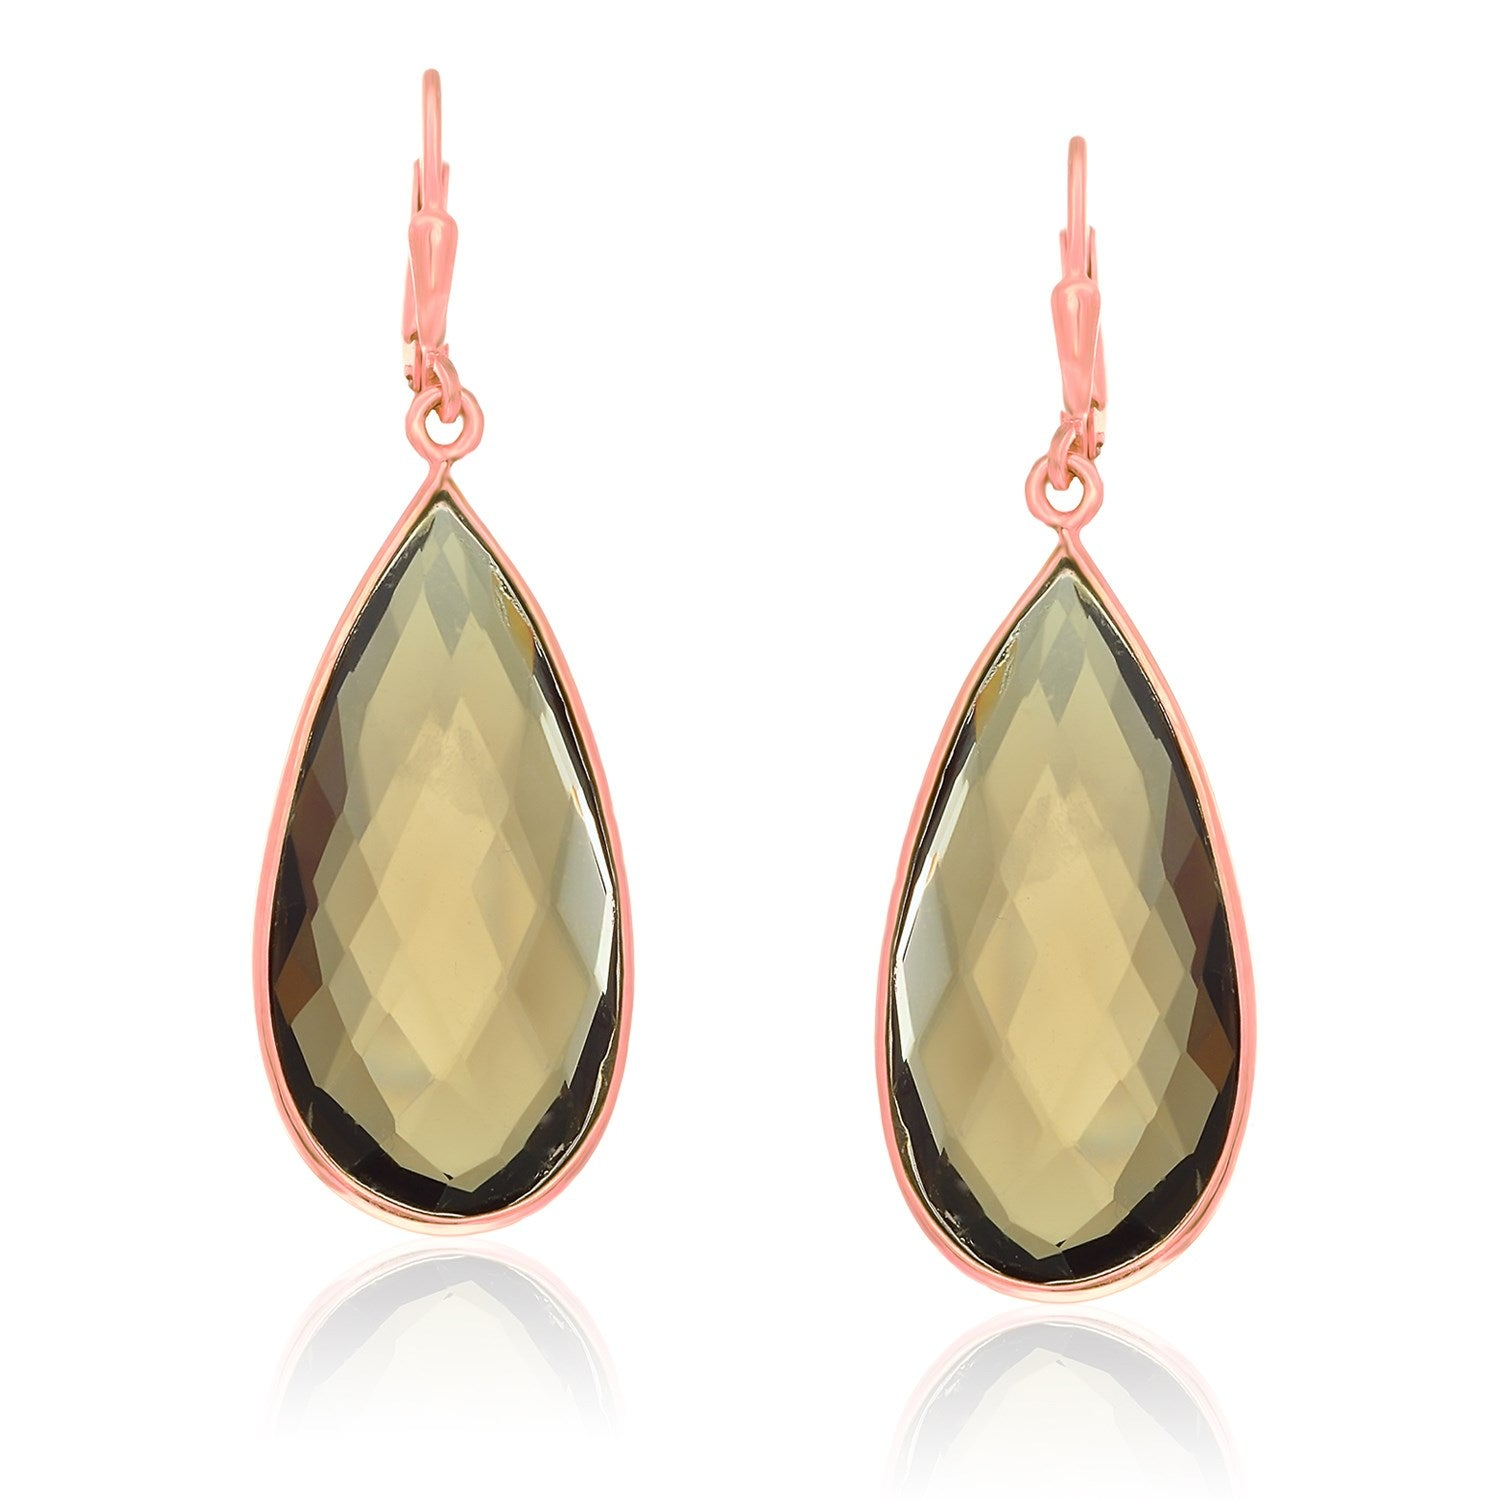 Unique Modern Paris Style Sterling Silver Rose Gold Plated Teardrop Smokey Quartz Earrings